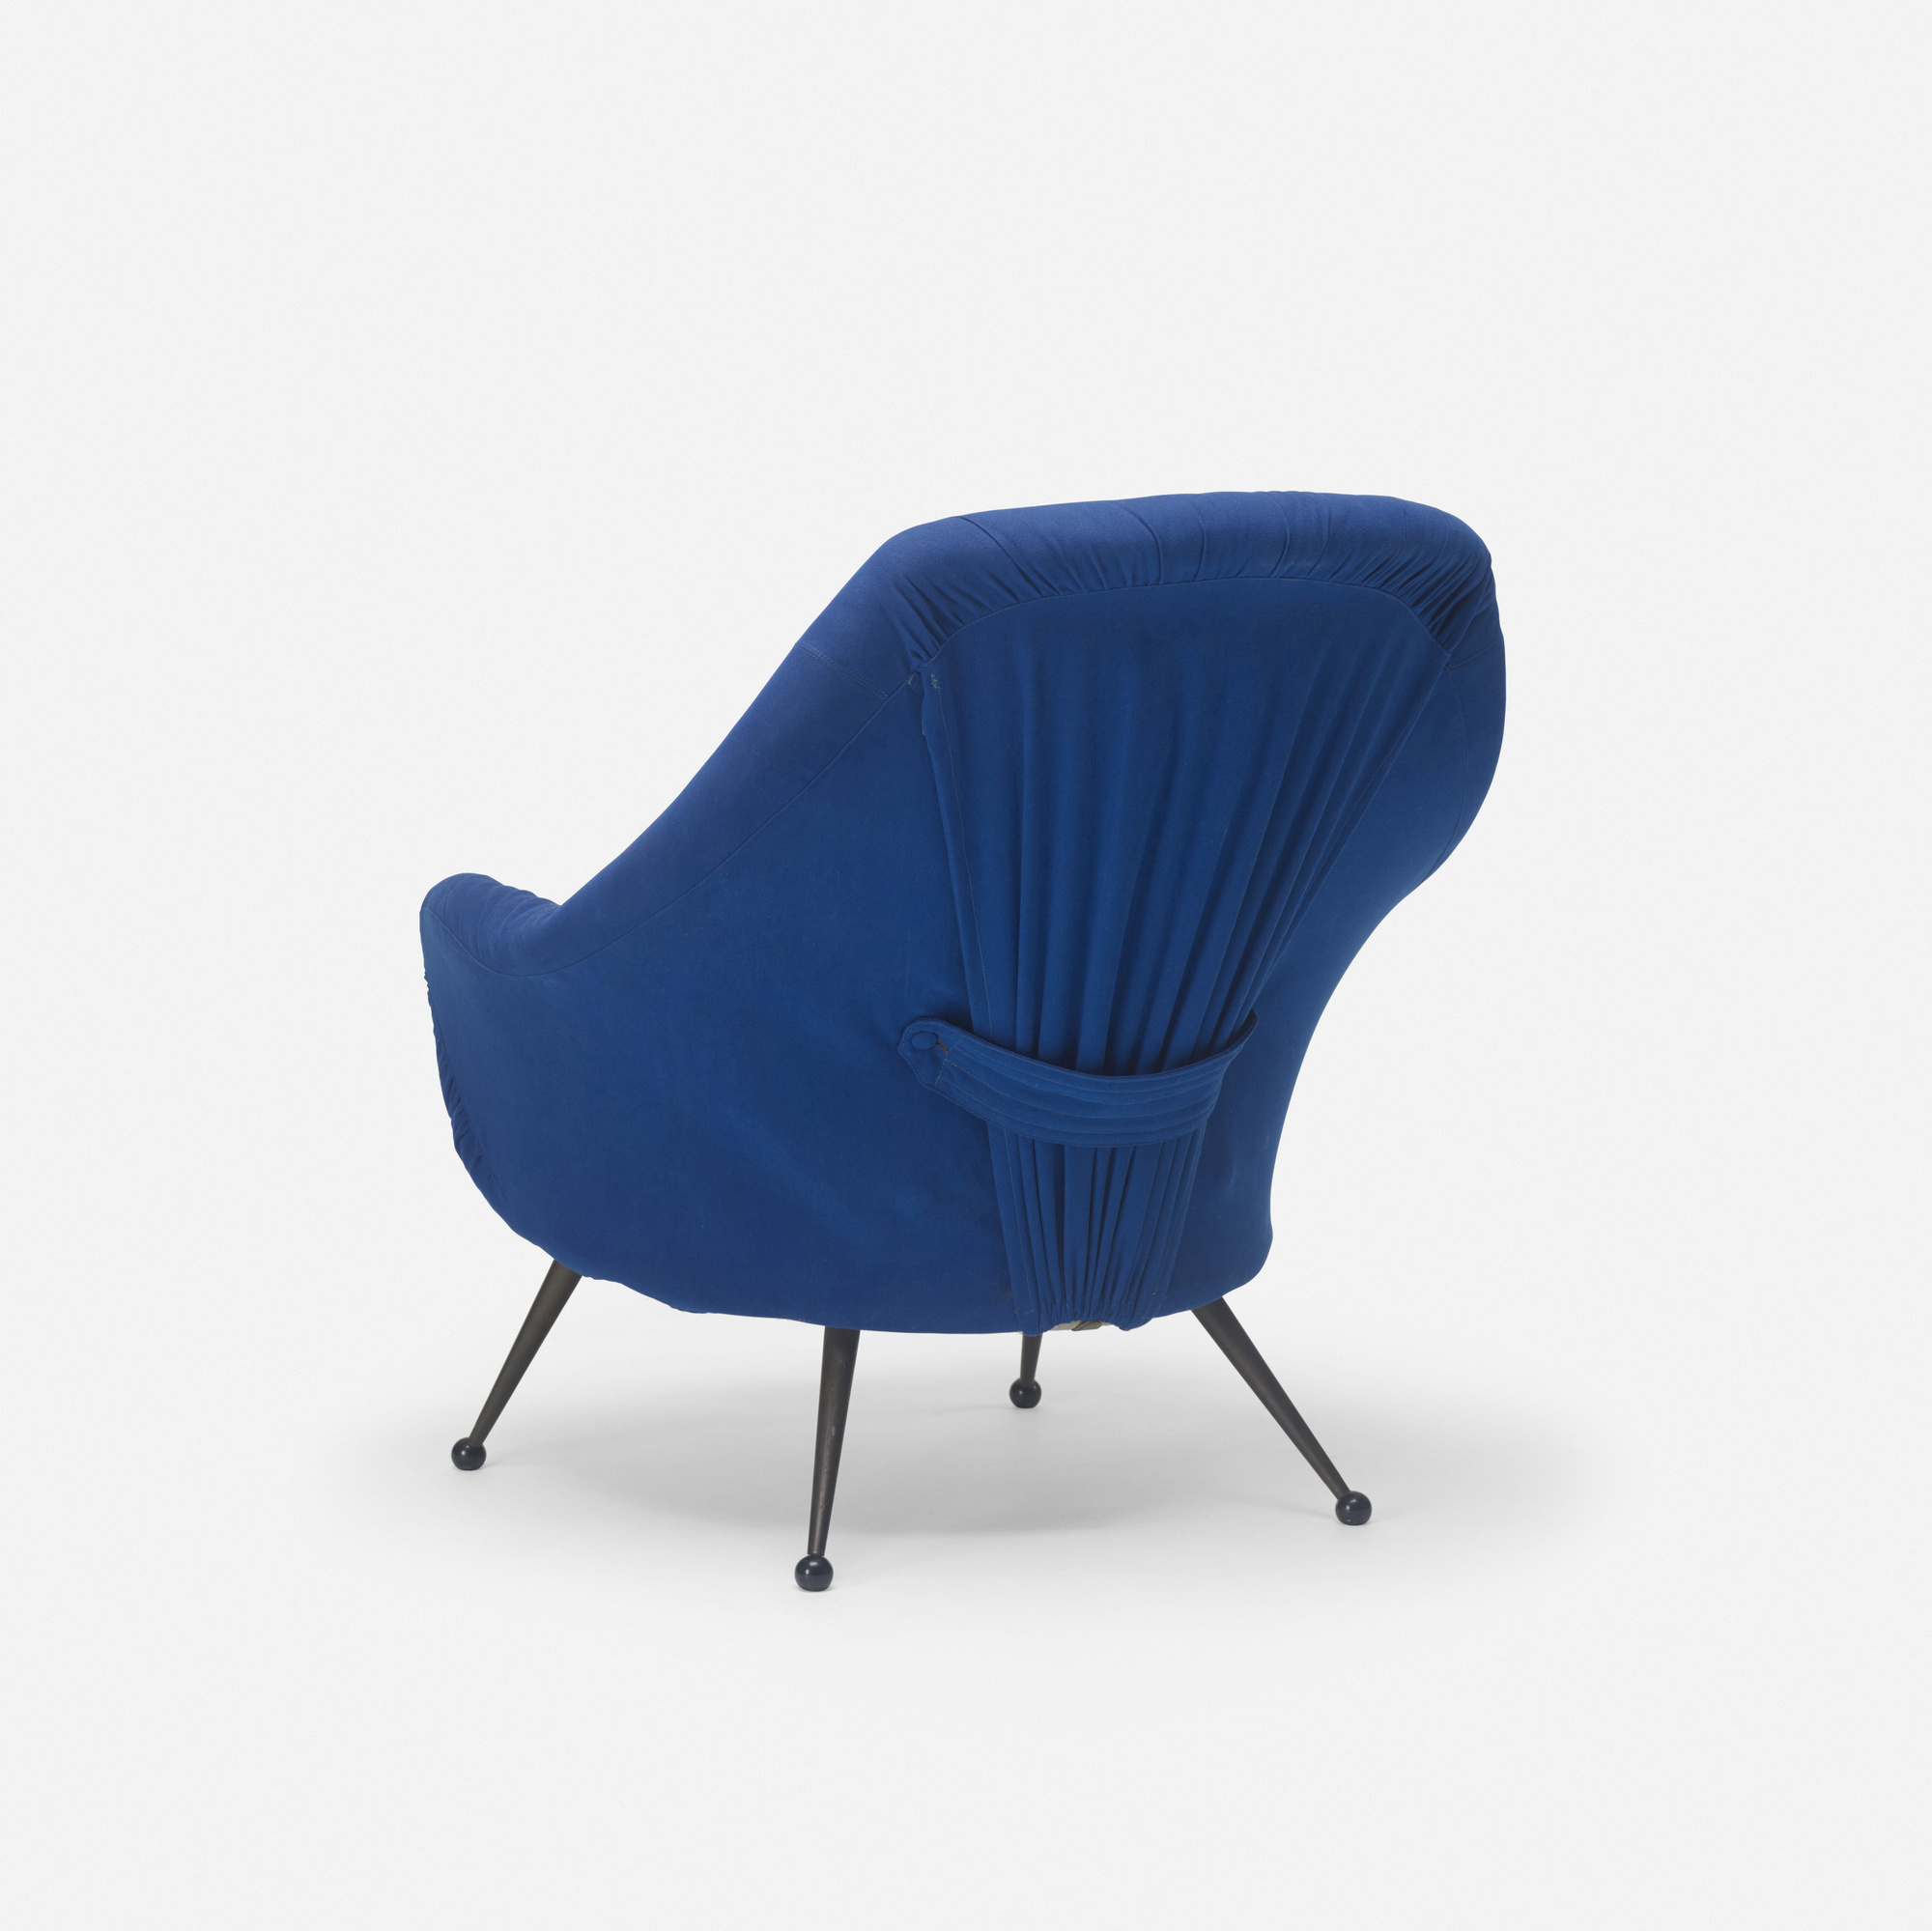 282: Marco Zanuso / Martingala lounge chair (2 of 2)